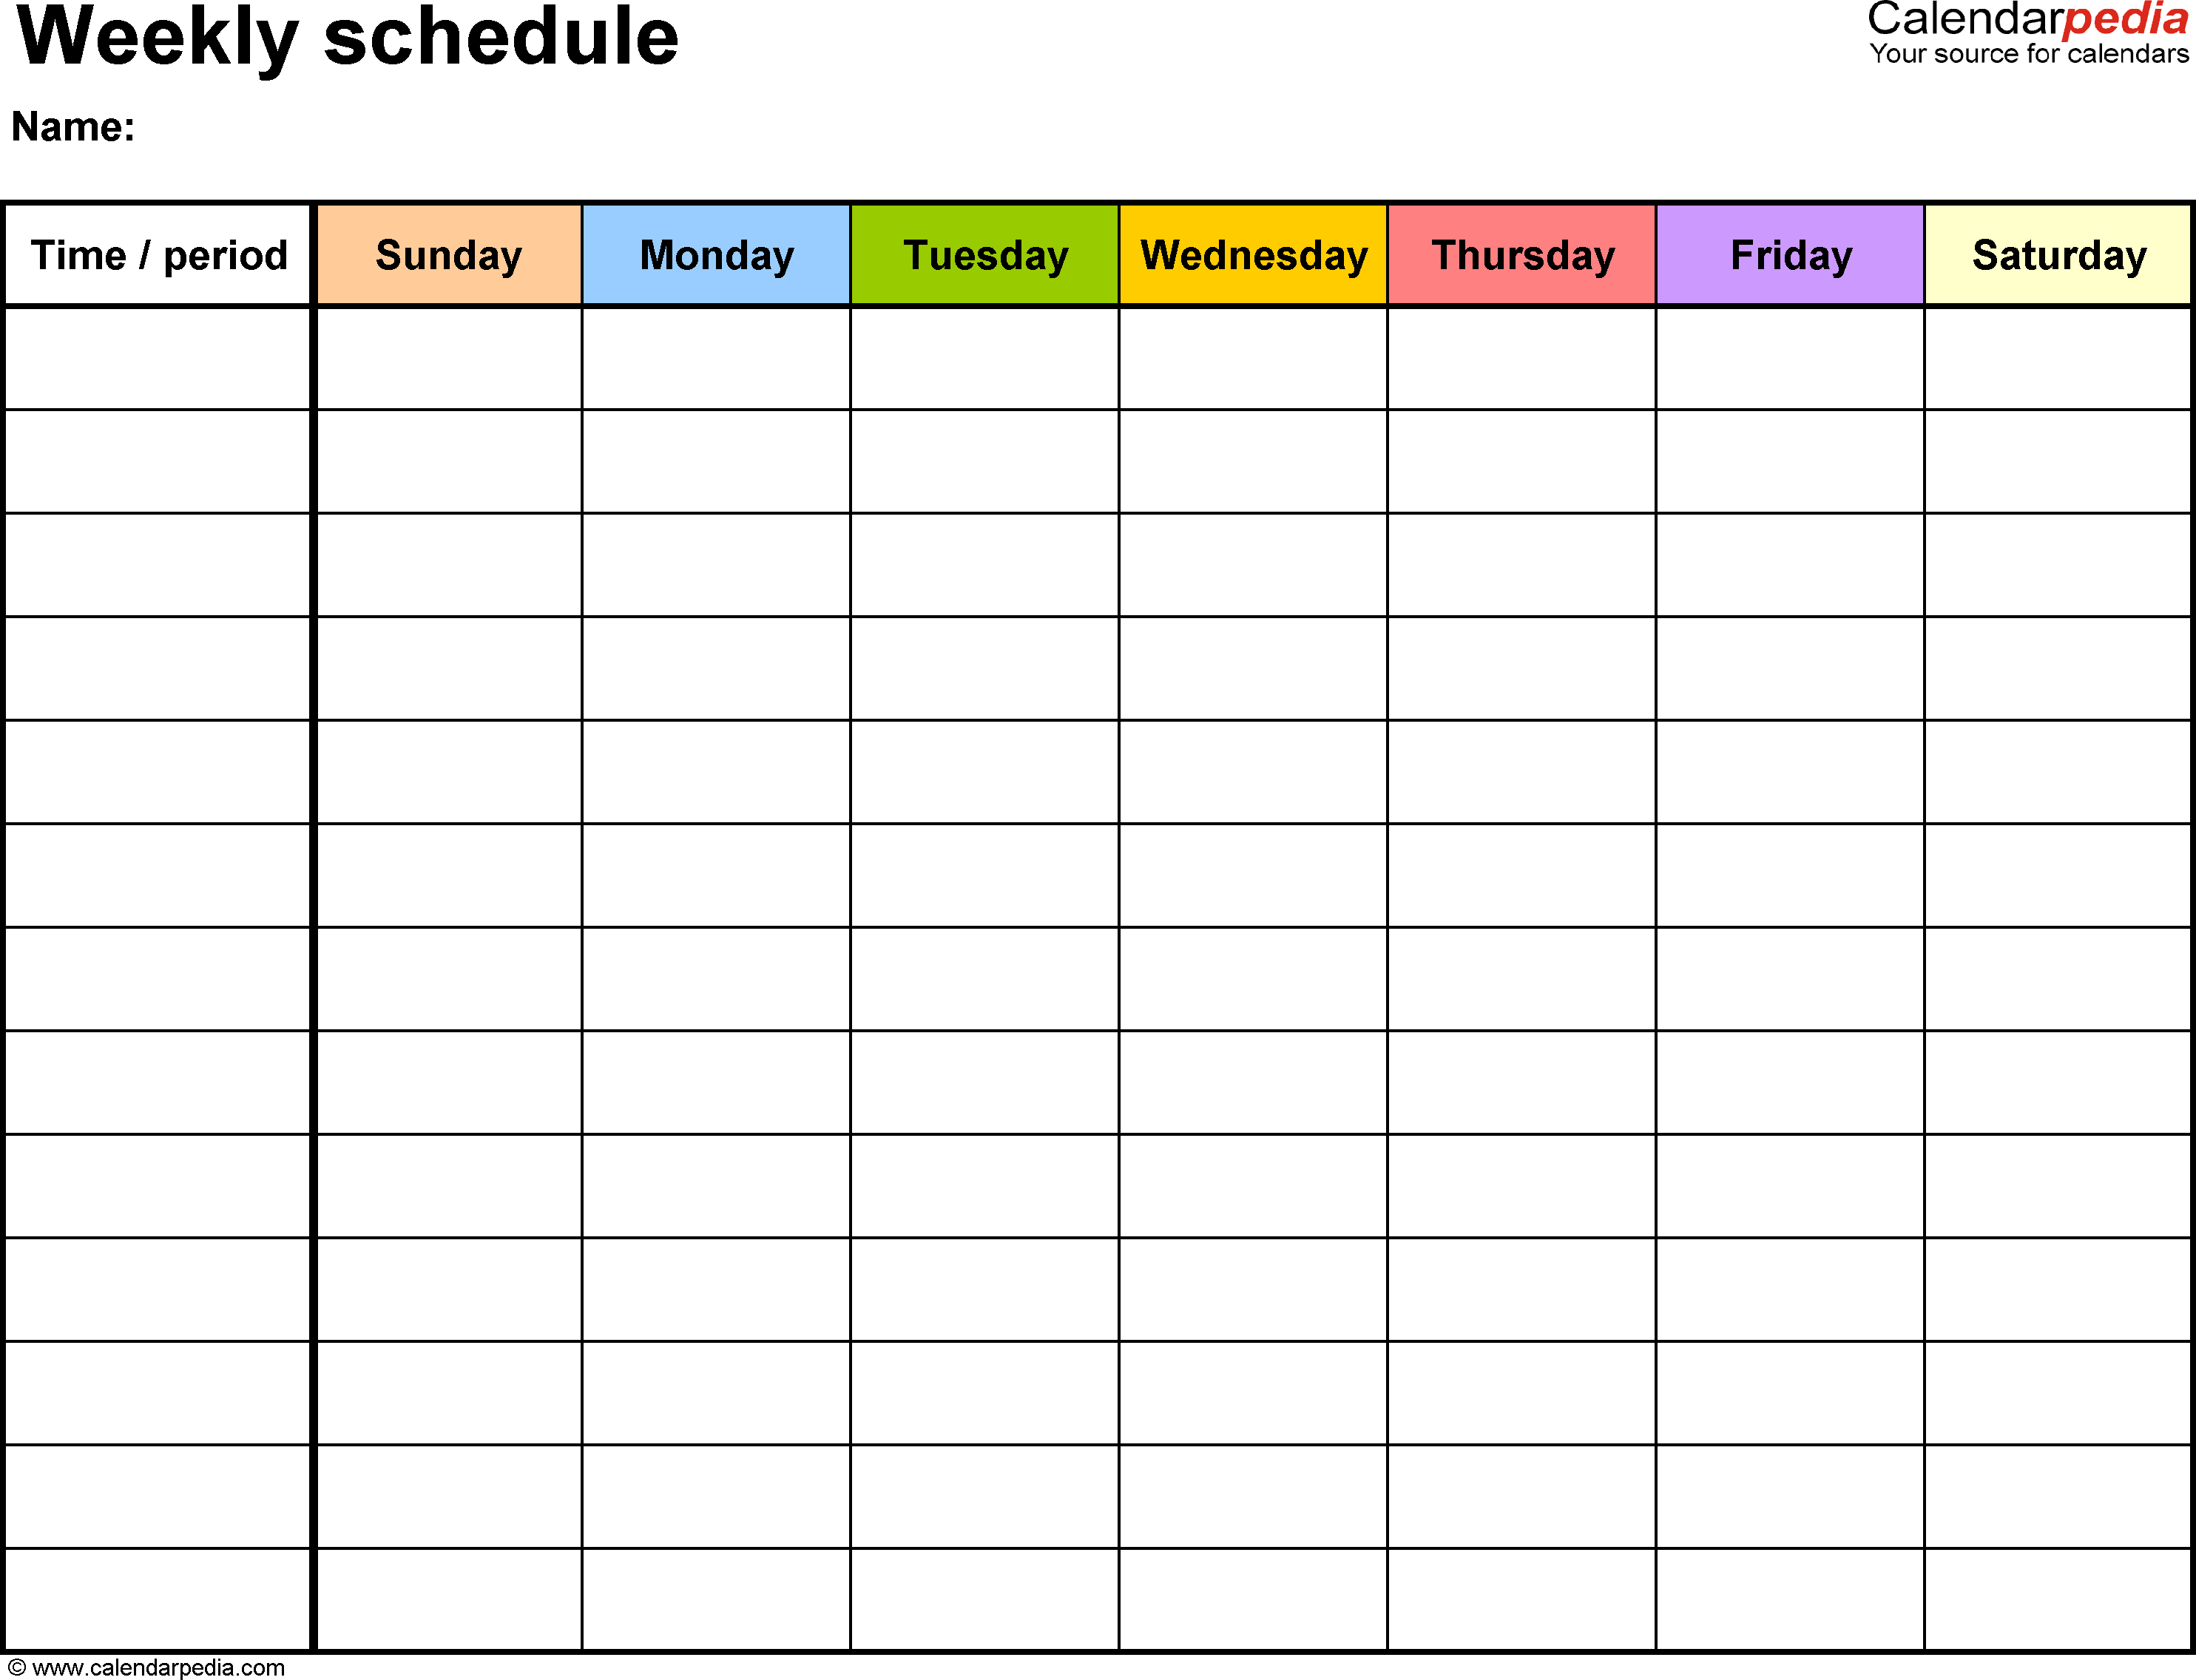 Weekly Schedule Template For Word Version 13: Landscape, 1 throughout Monday Through Sunday Calendar